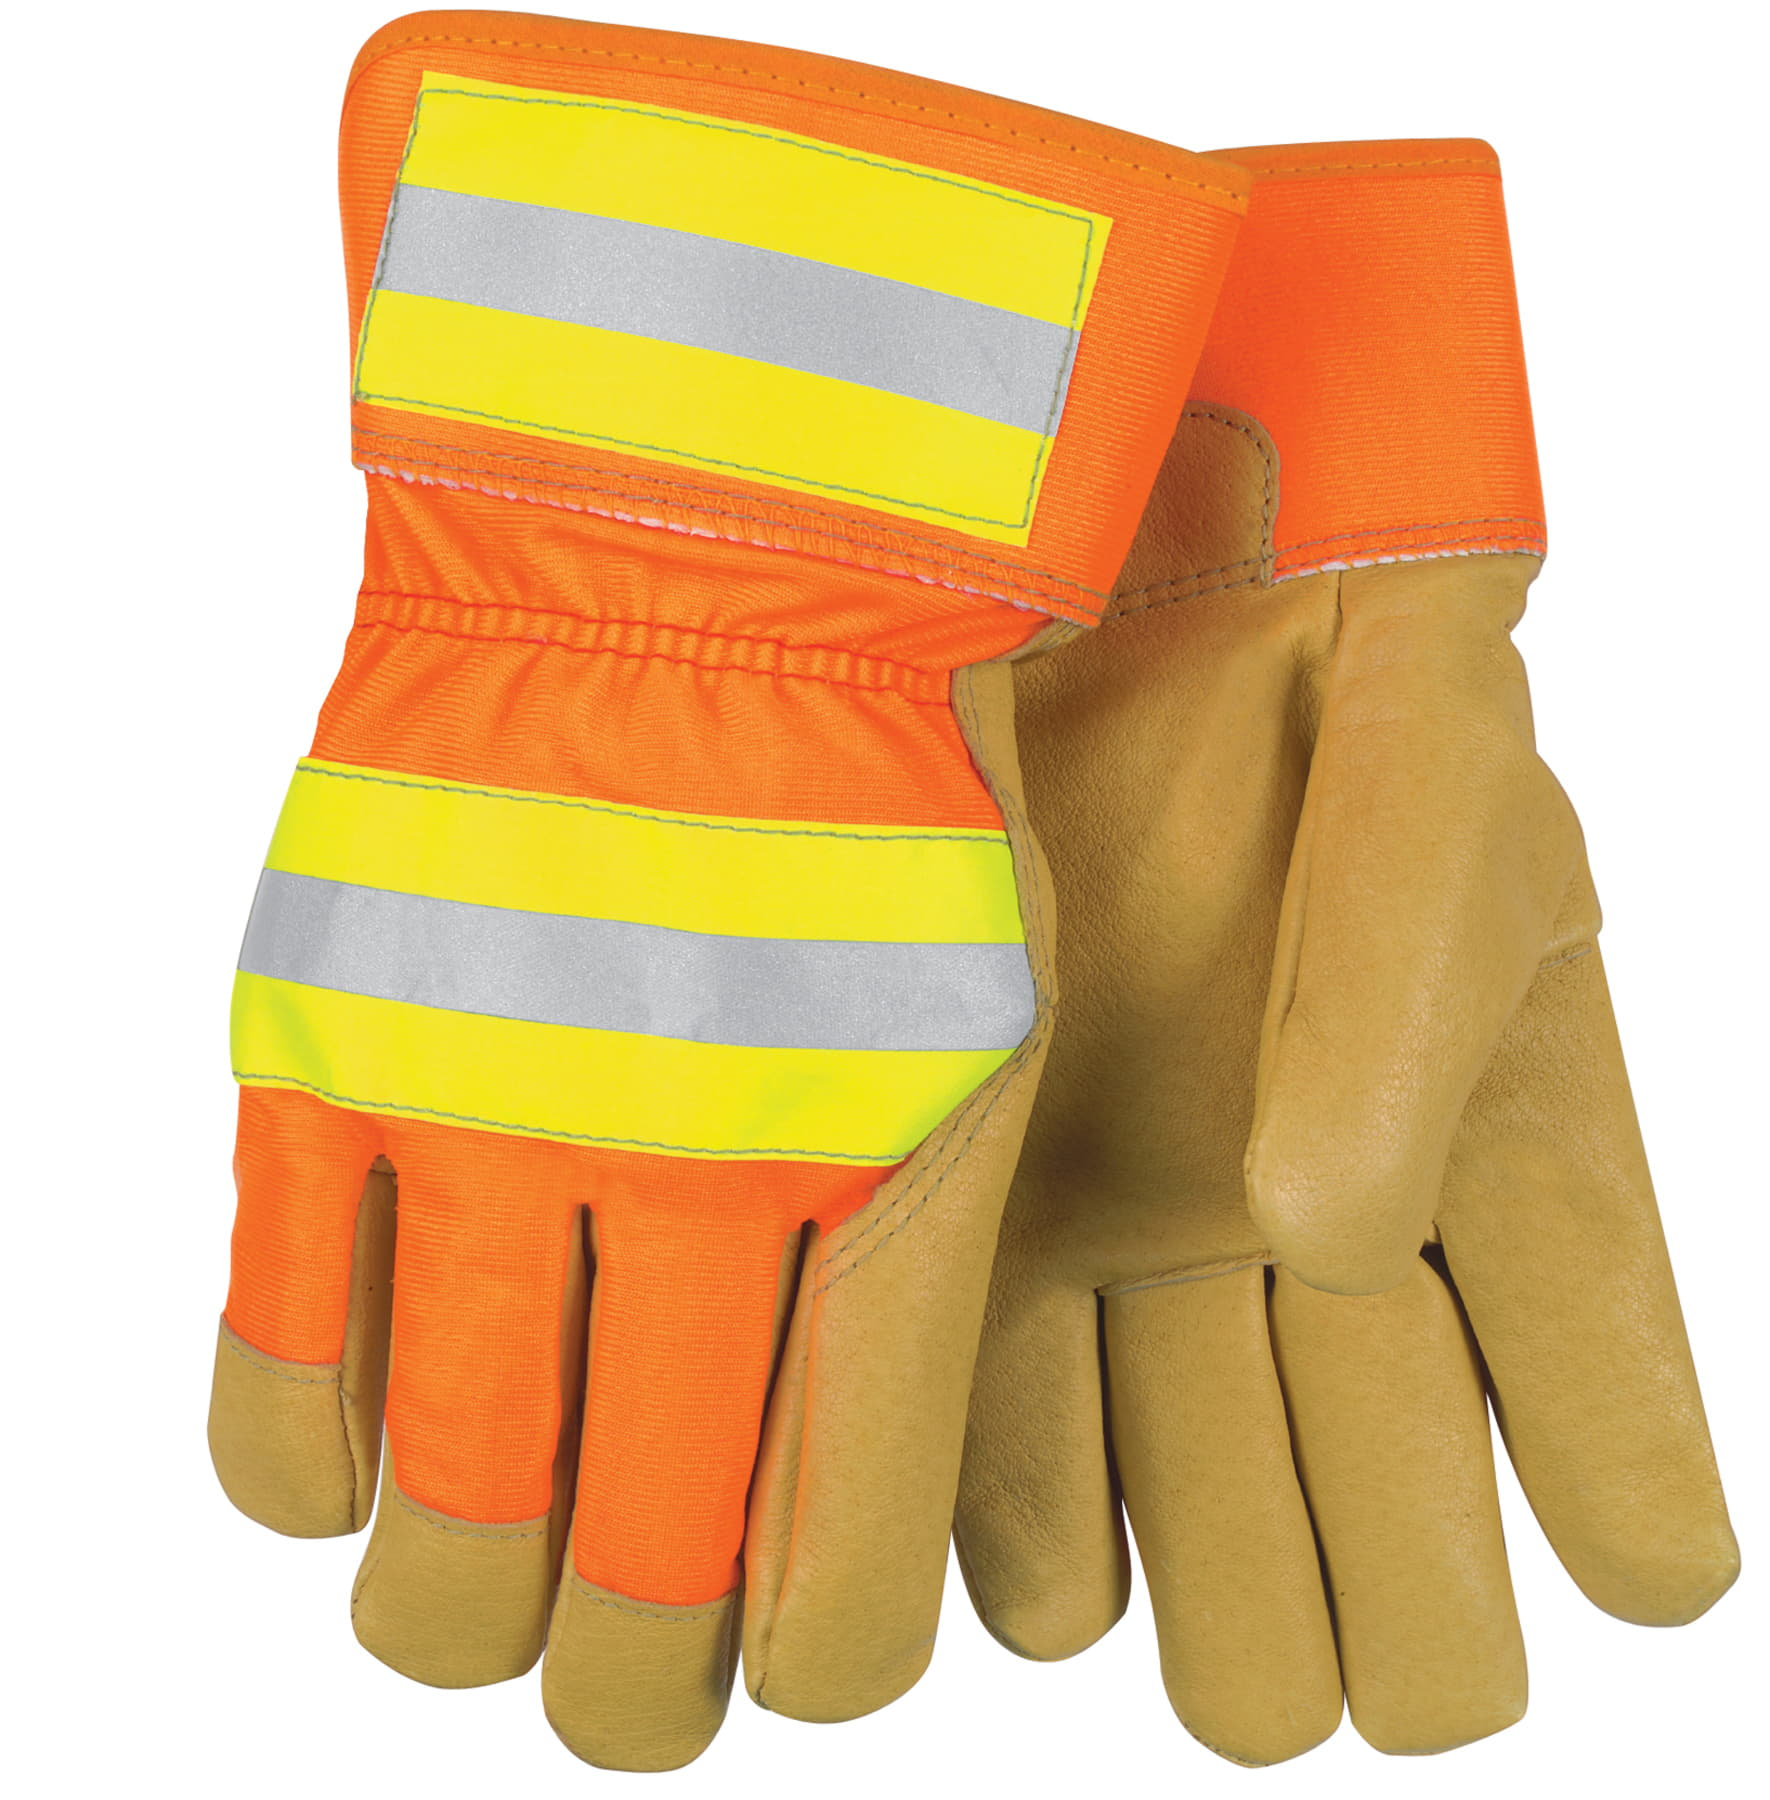 MCR Safety 19261 Pigskin Leather glove